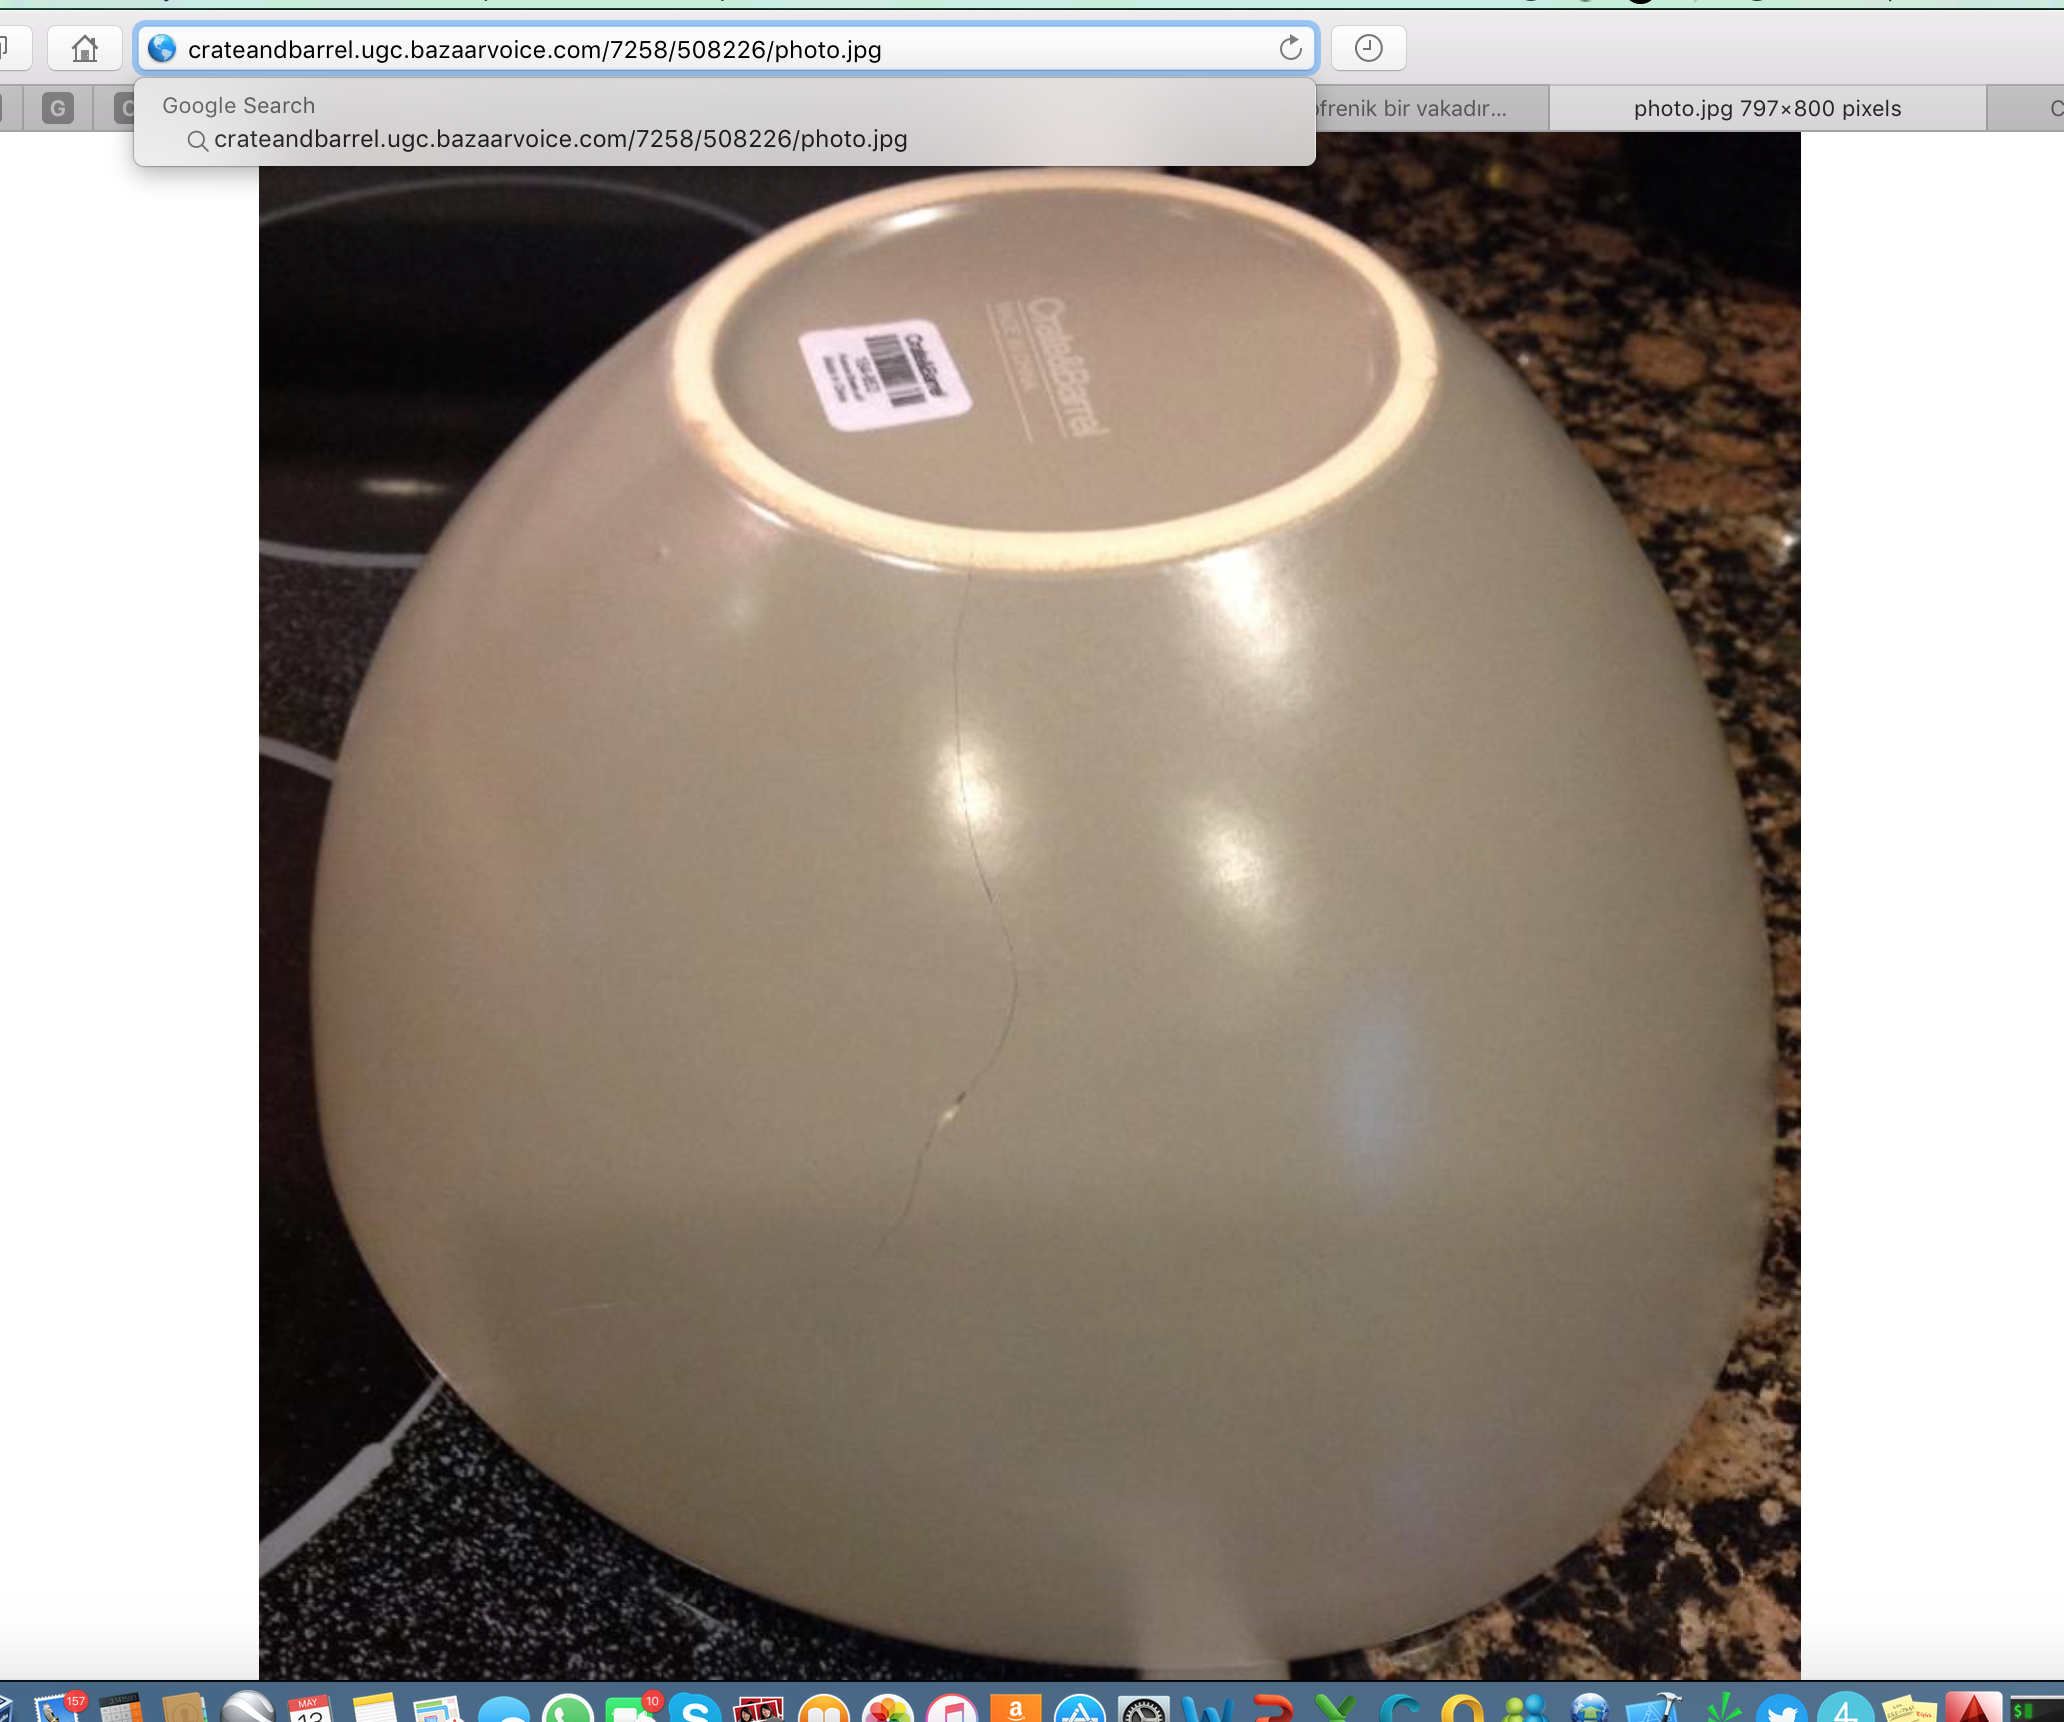 Crate and barrel sofa quality - I Ordered A Set Of Bowl From Crate And Barrel Website And The Largest One Came Out Broken I Thought It Was Probably Fedex Carrier S Fault And Contacted